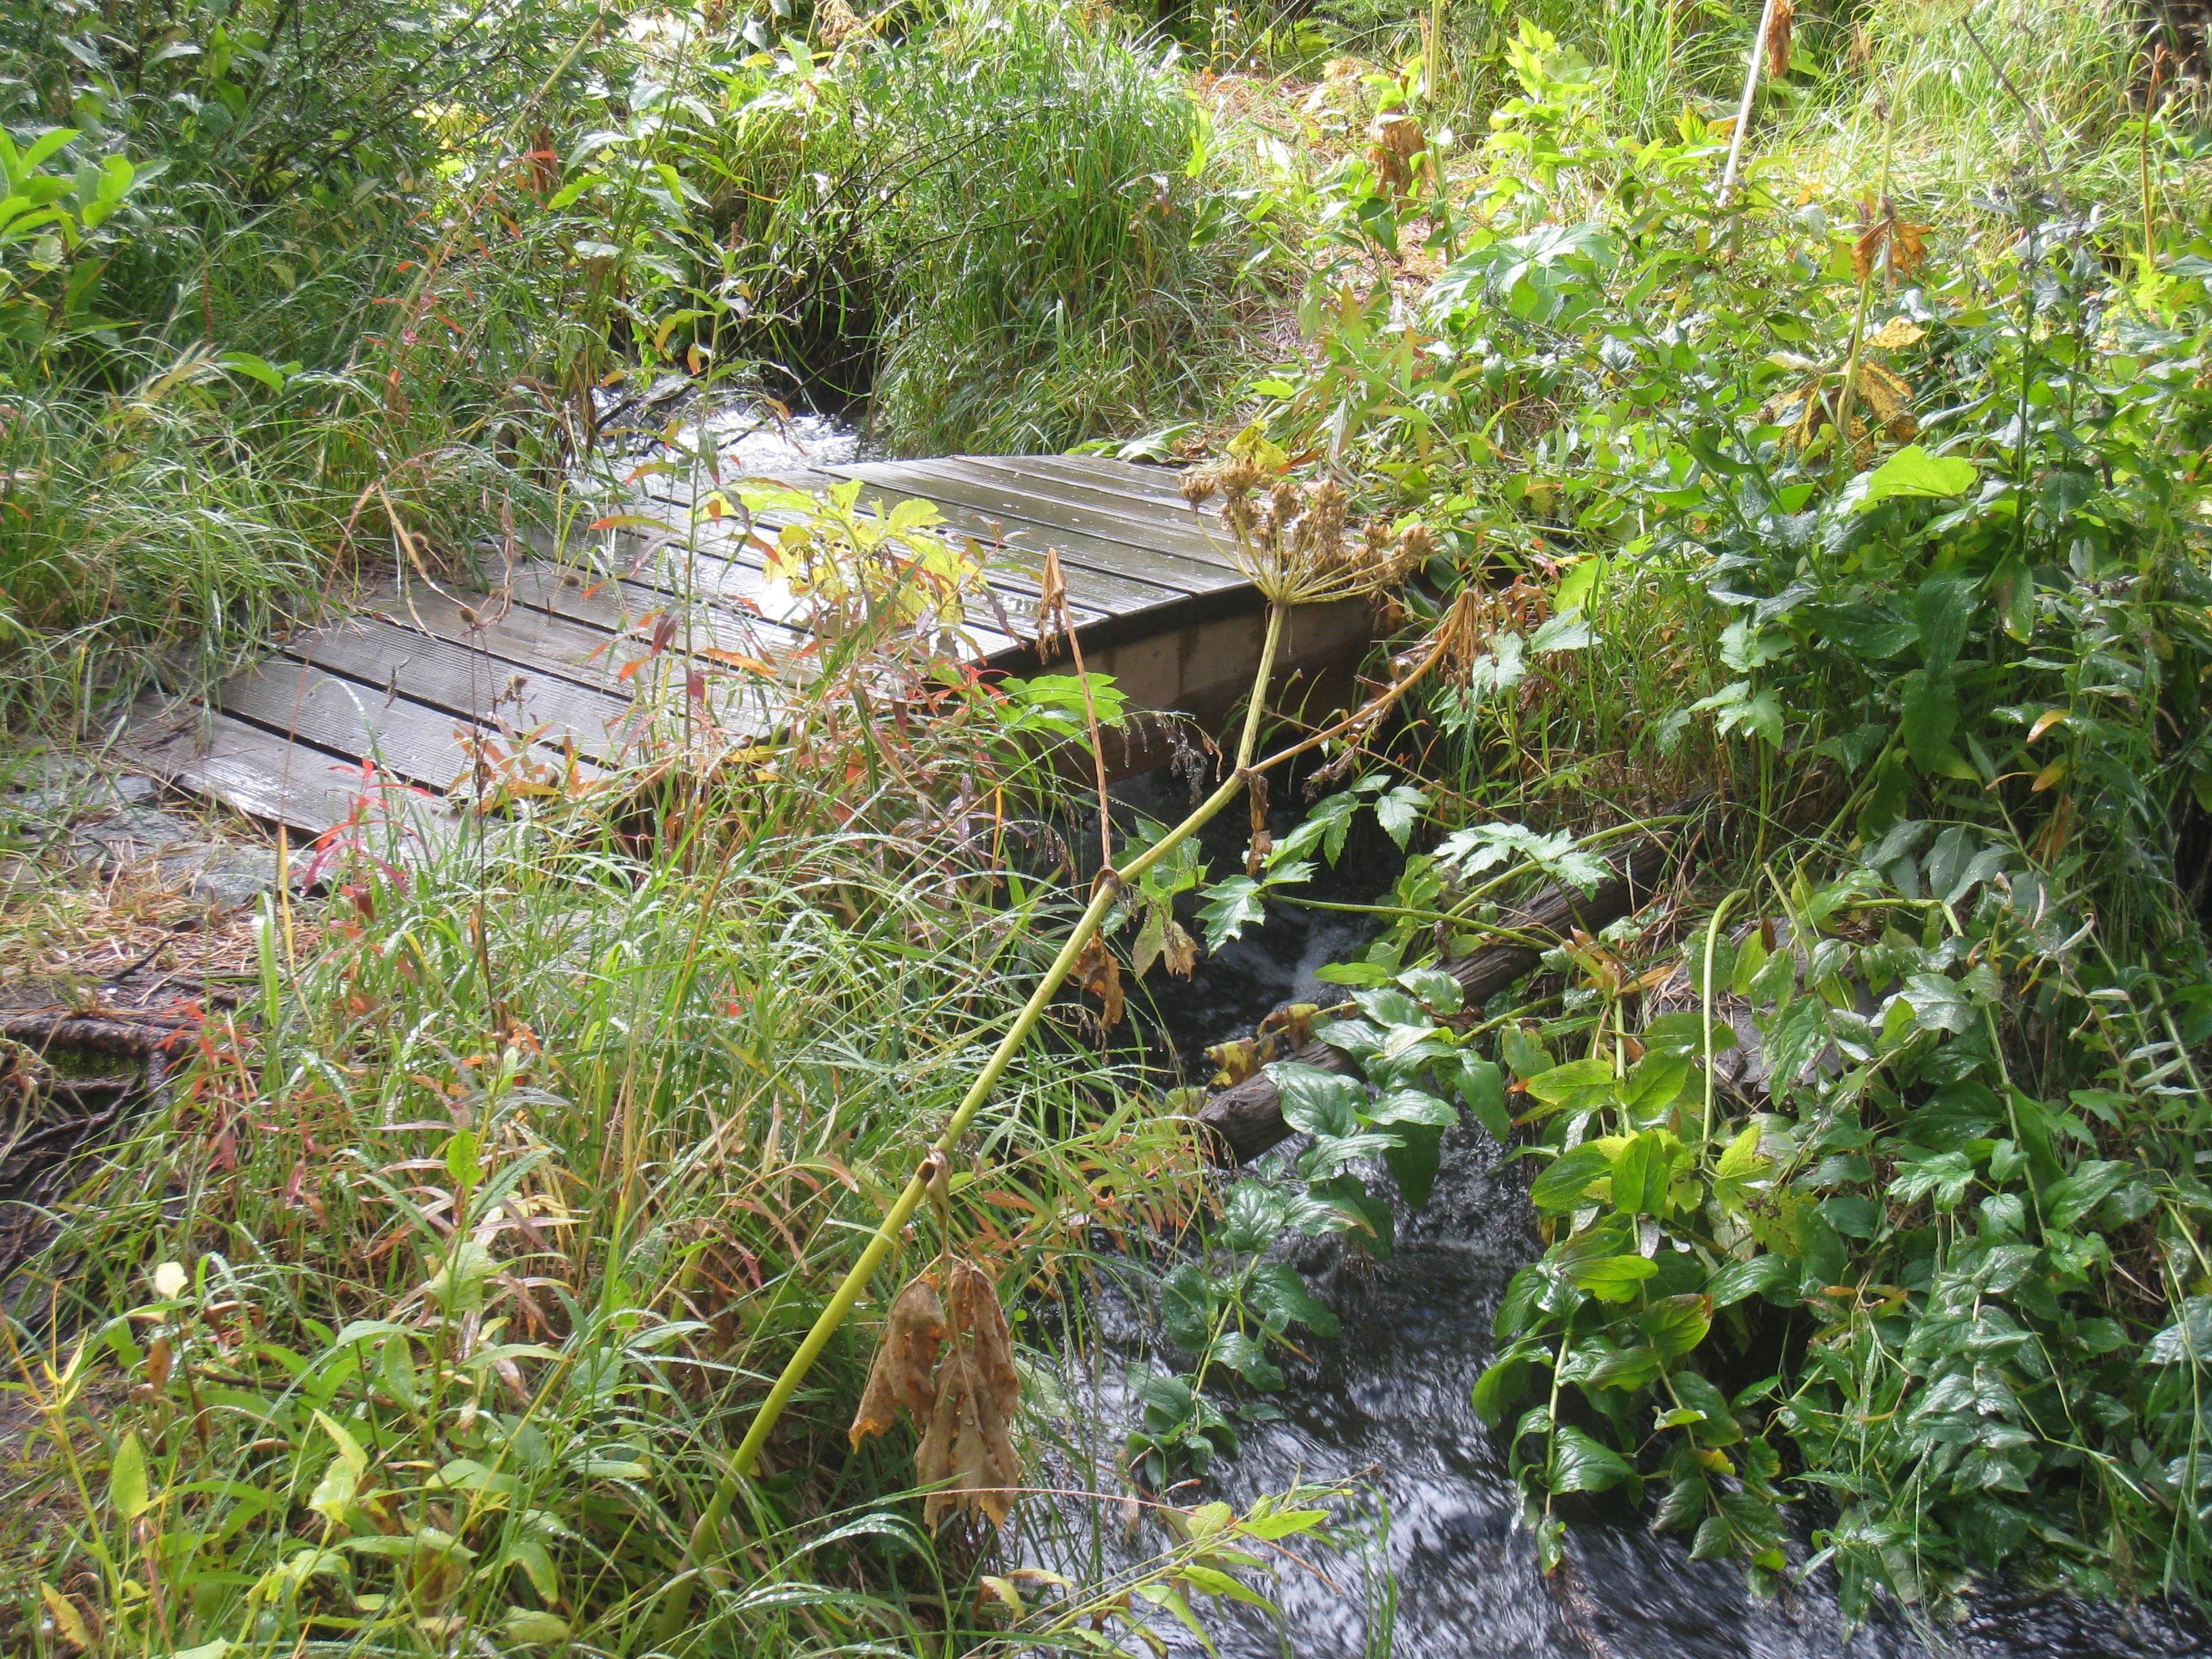 Footbridge Across Creek